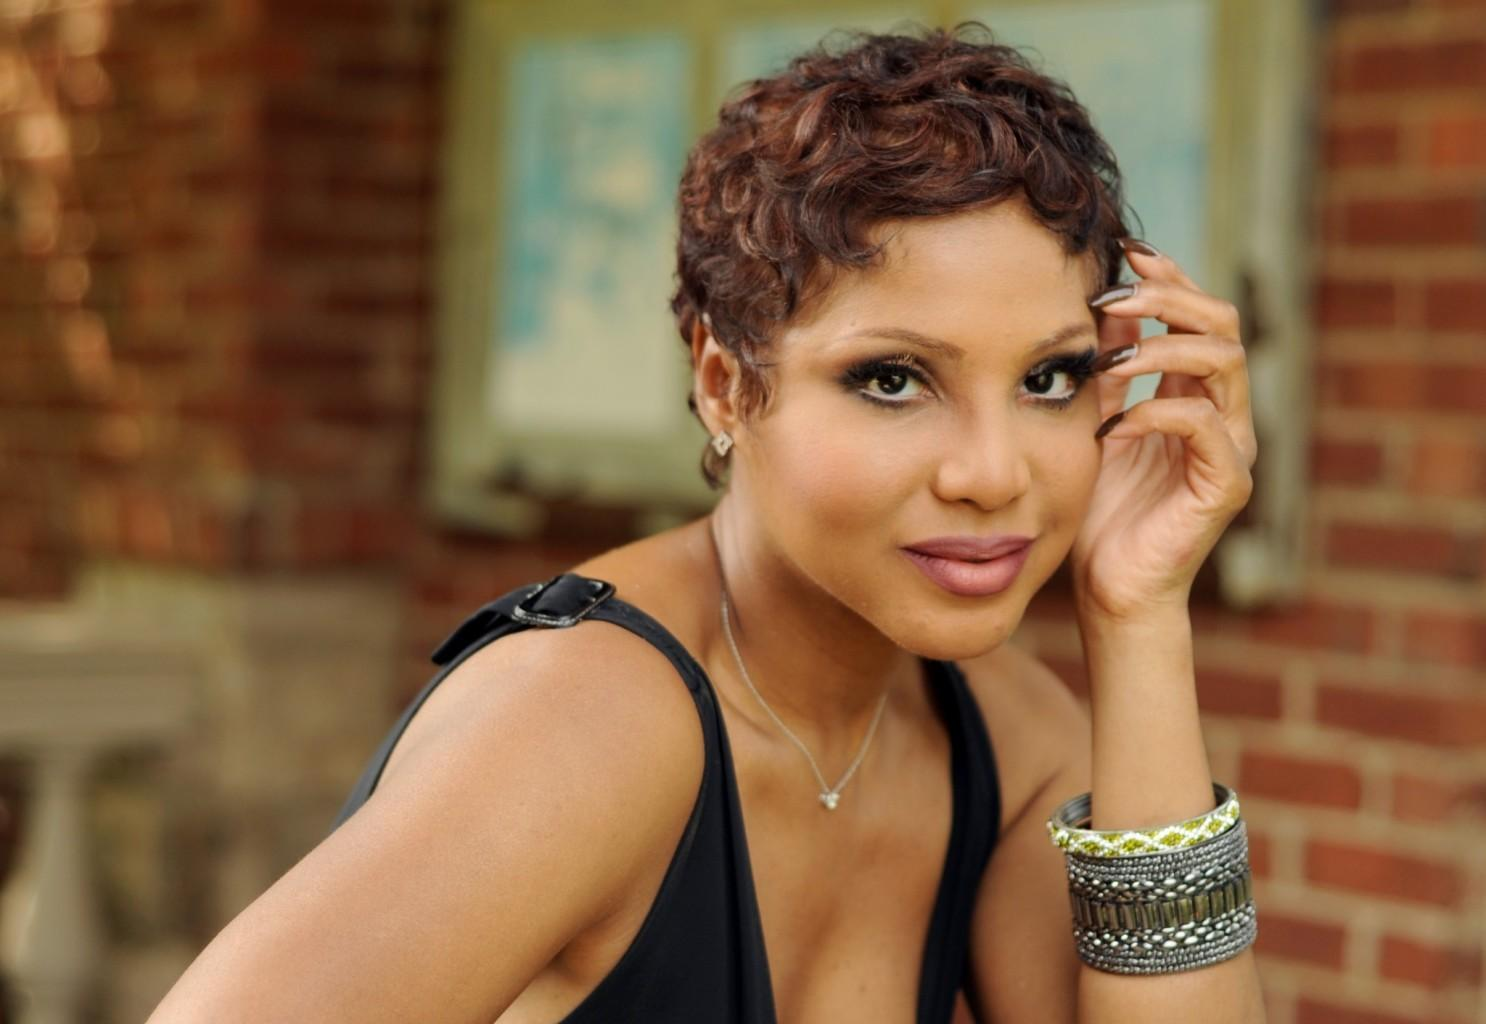 Toni Braxton's Fans Are Crazy With Excitement About Her Latest Album, 'Spell My Name'